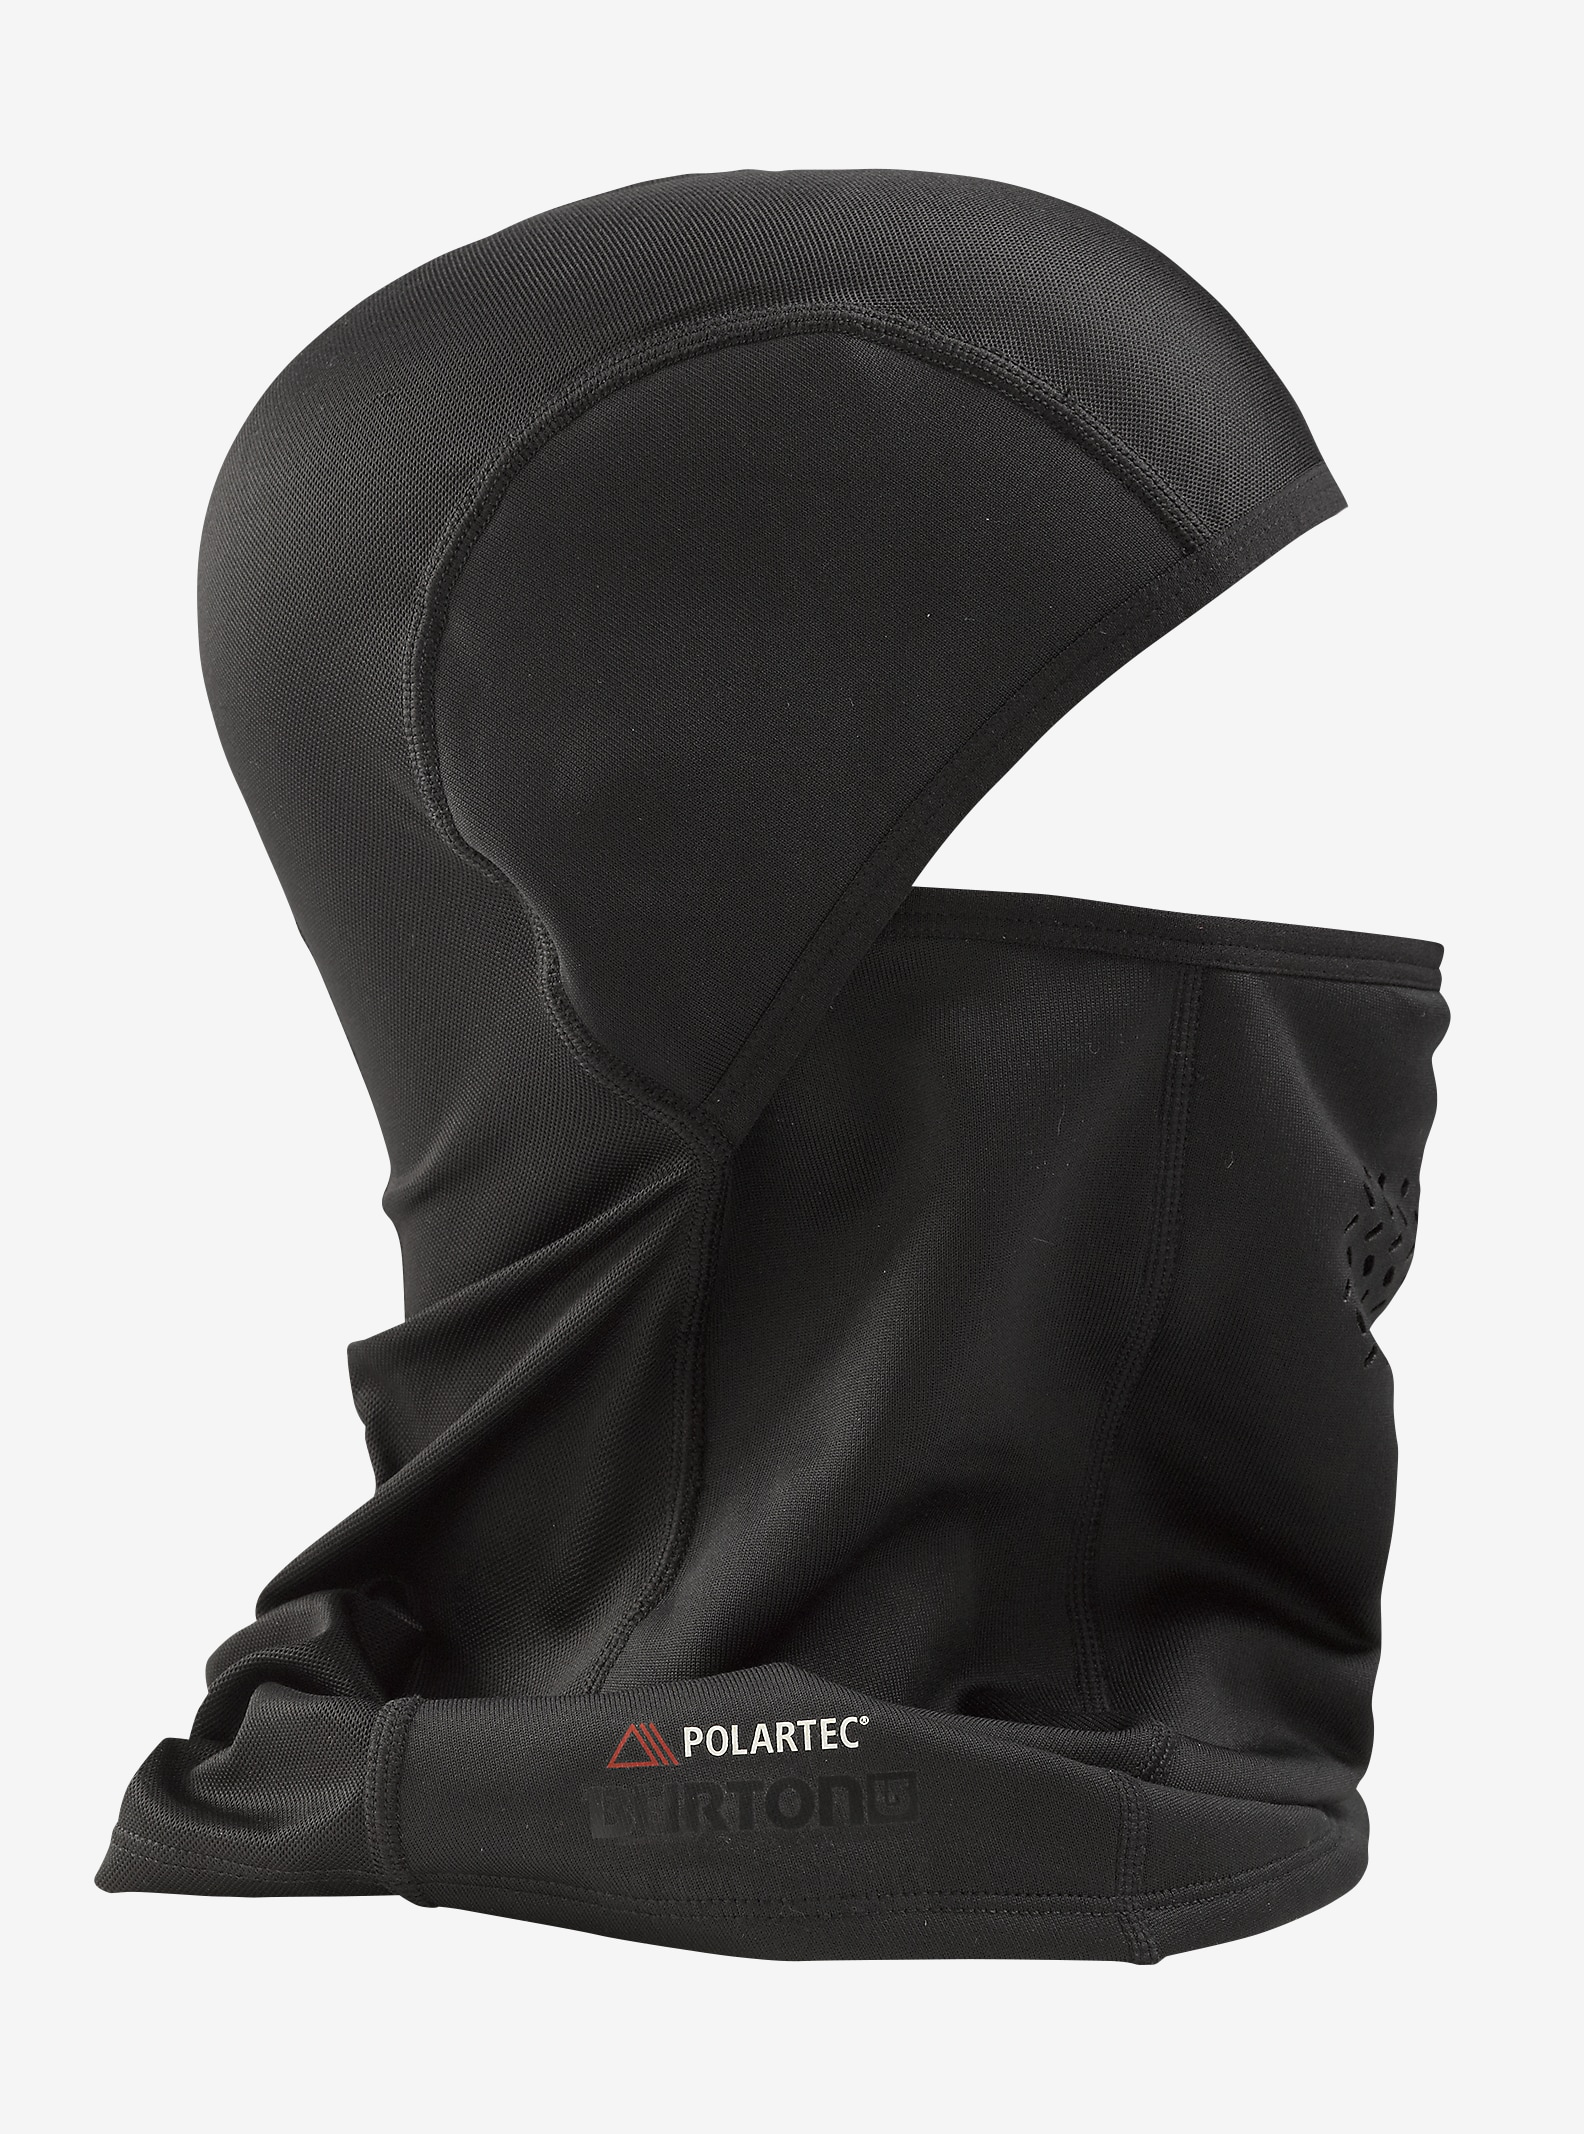 Burton Premium Balaclava shown in True Black